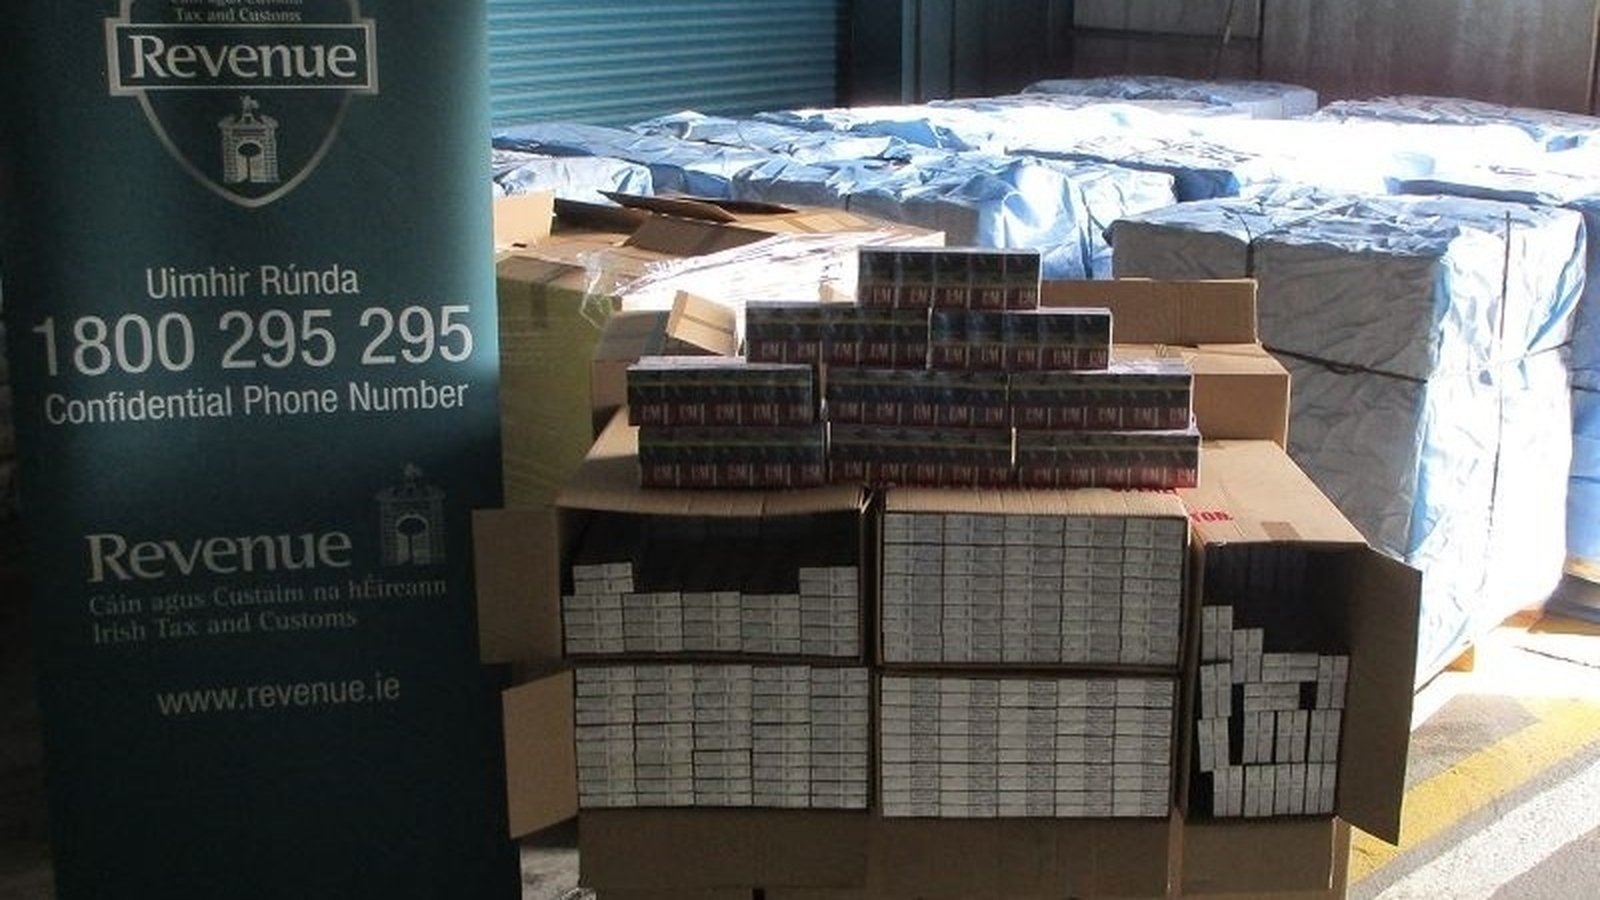 €2 million worth of cigarettes seized at Rosslare port